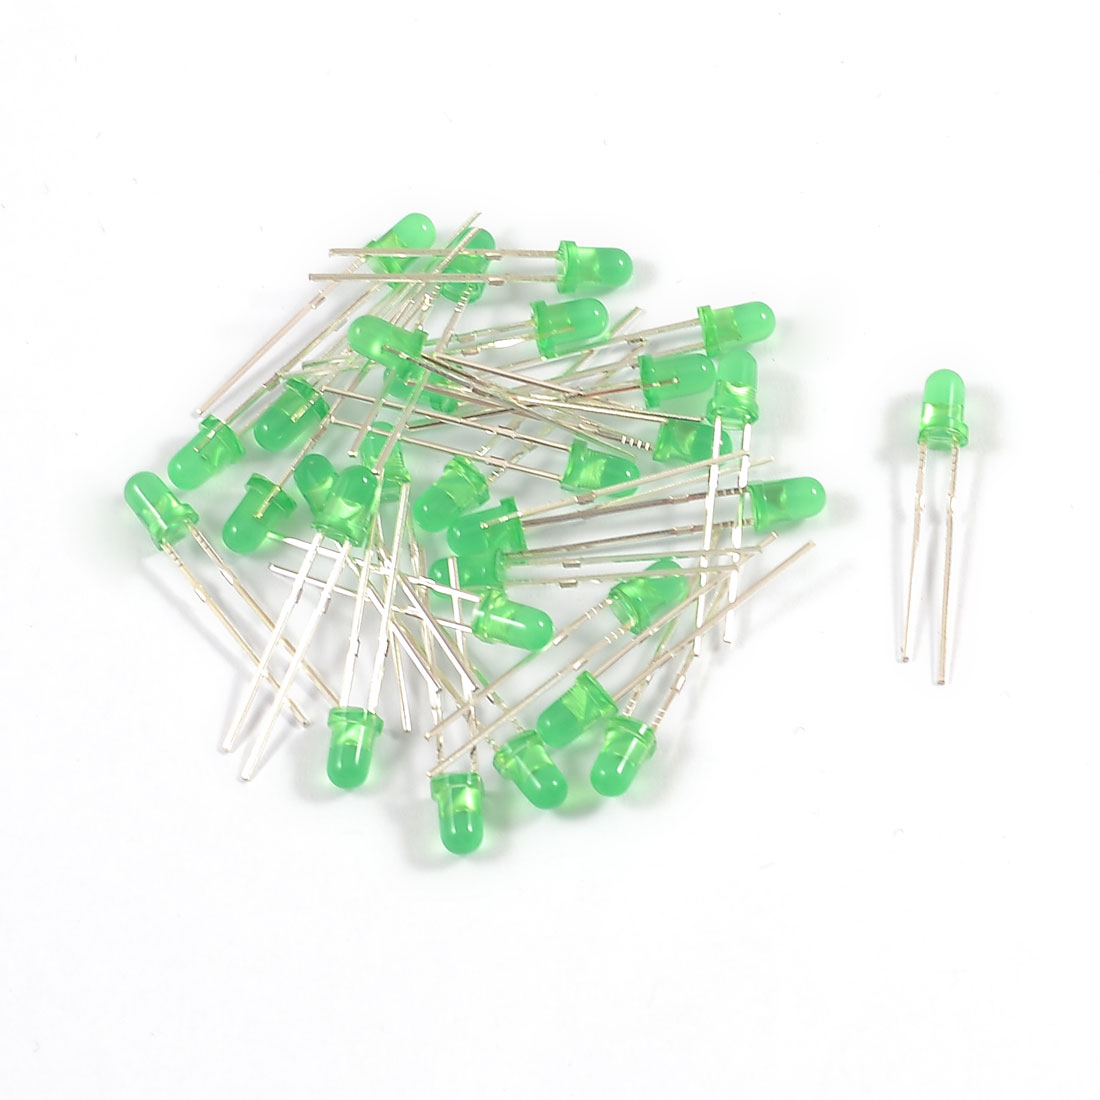 30 Pieces 2 Terminals Round Head Superbright Green LED Light Diodes